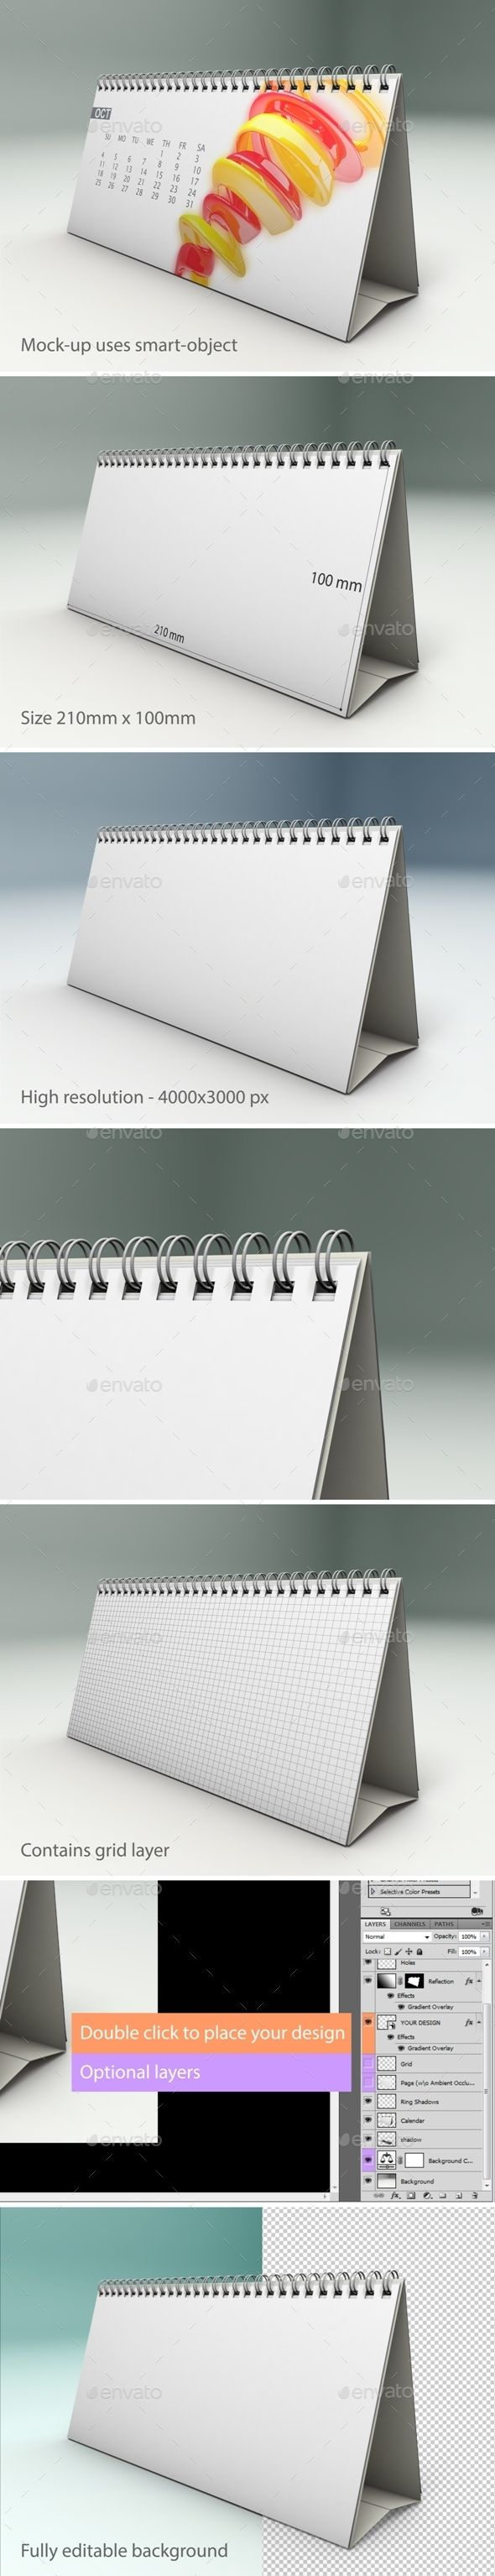 Desk Calendar Mock-Up (Photoshop PSD, CS5, 4000x3000, calendar, calendar mockup, date, day, design, desk, desk calendar, editable, field, fully, horizontal calendar, layer, mock-up, mockup, object, office, page, perspective, presentation, print, psd, realistic, size, smart, standart, stationery, template)